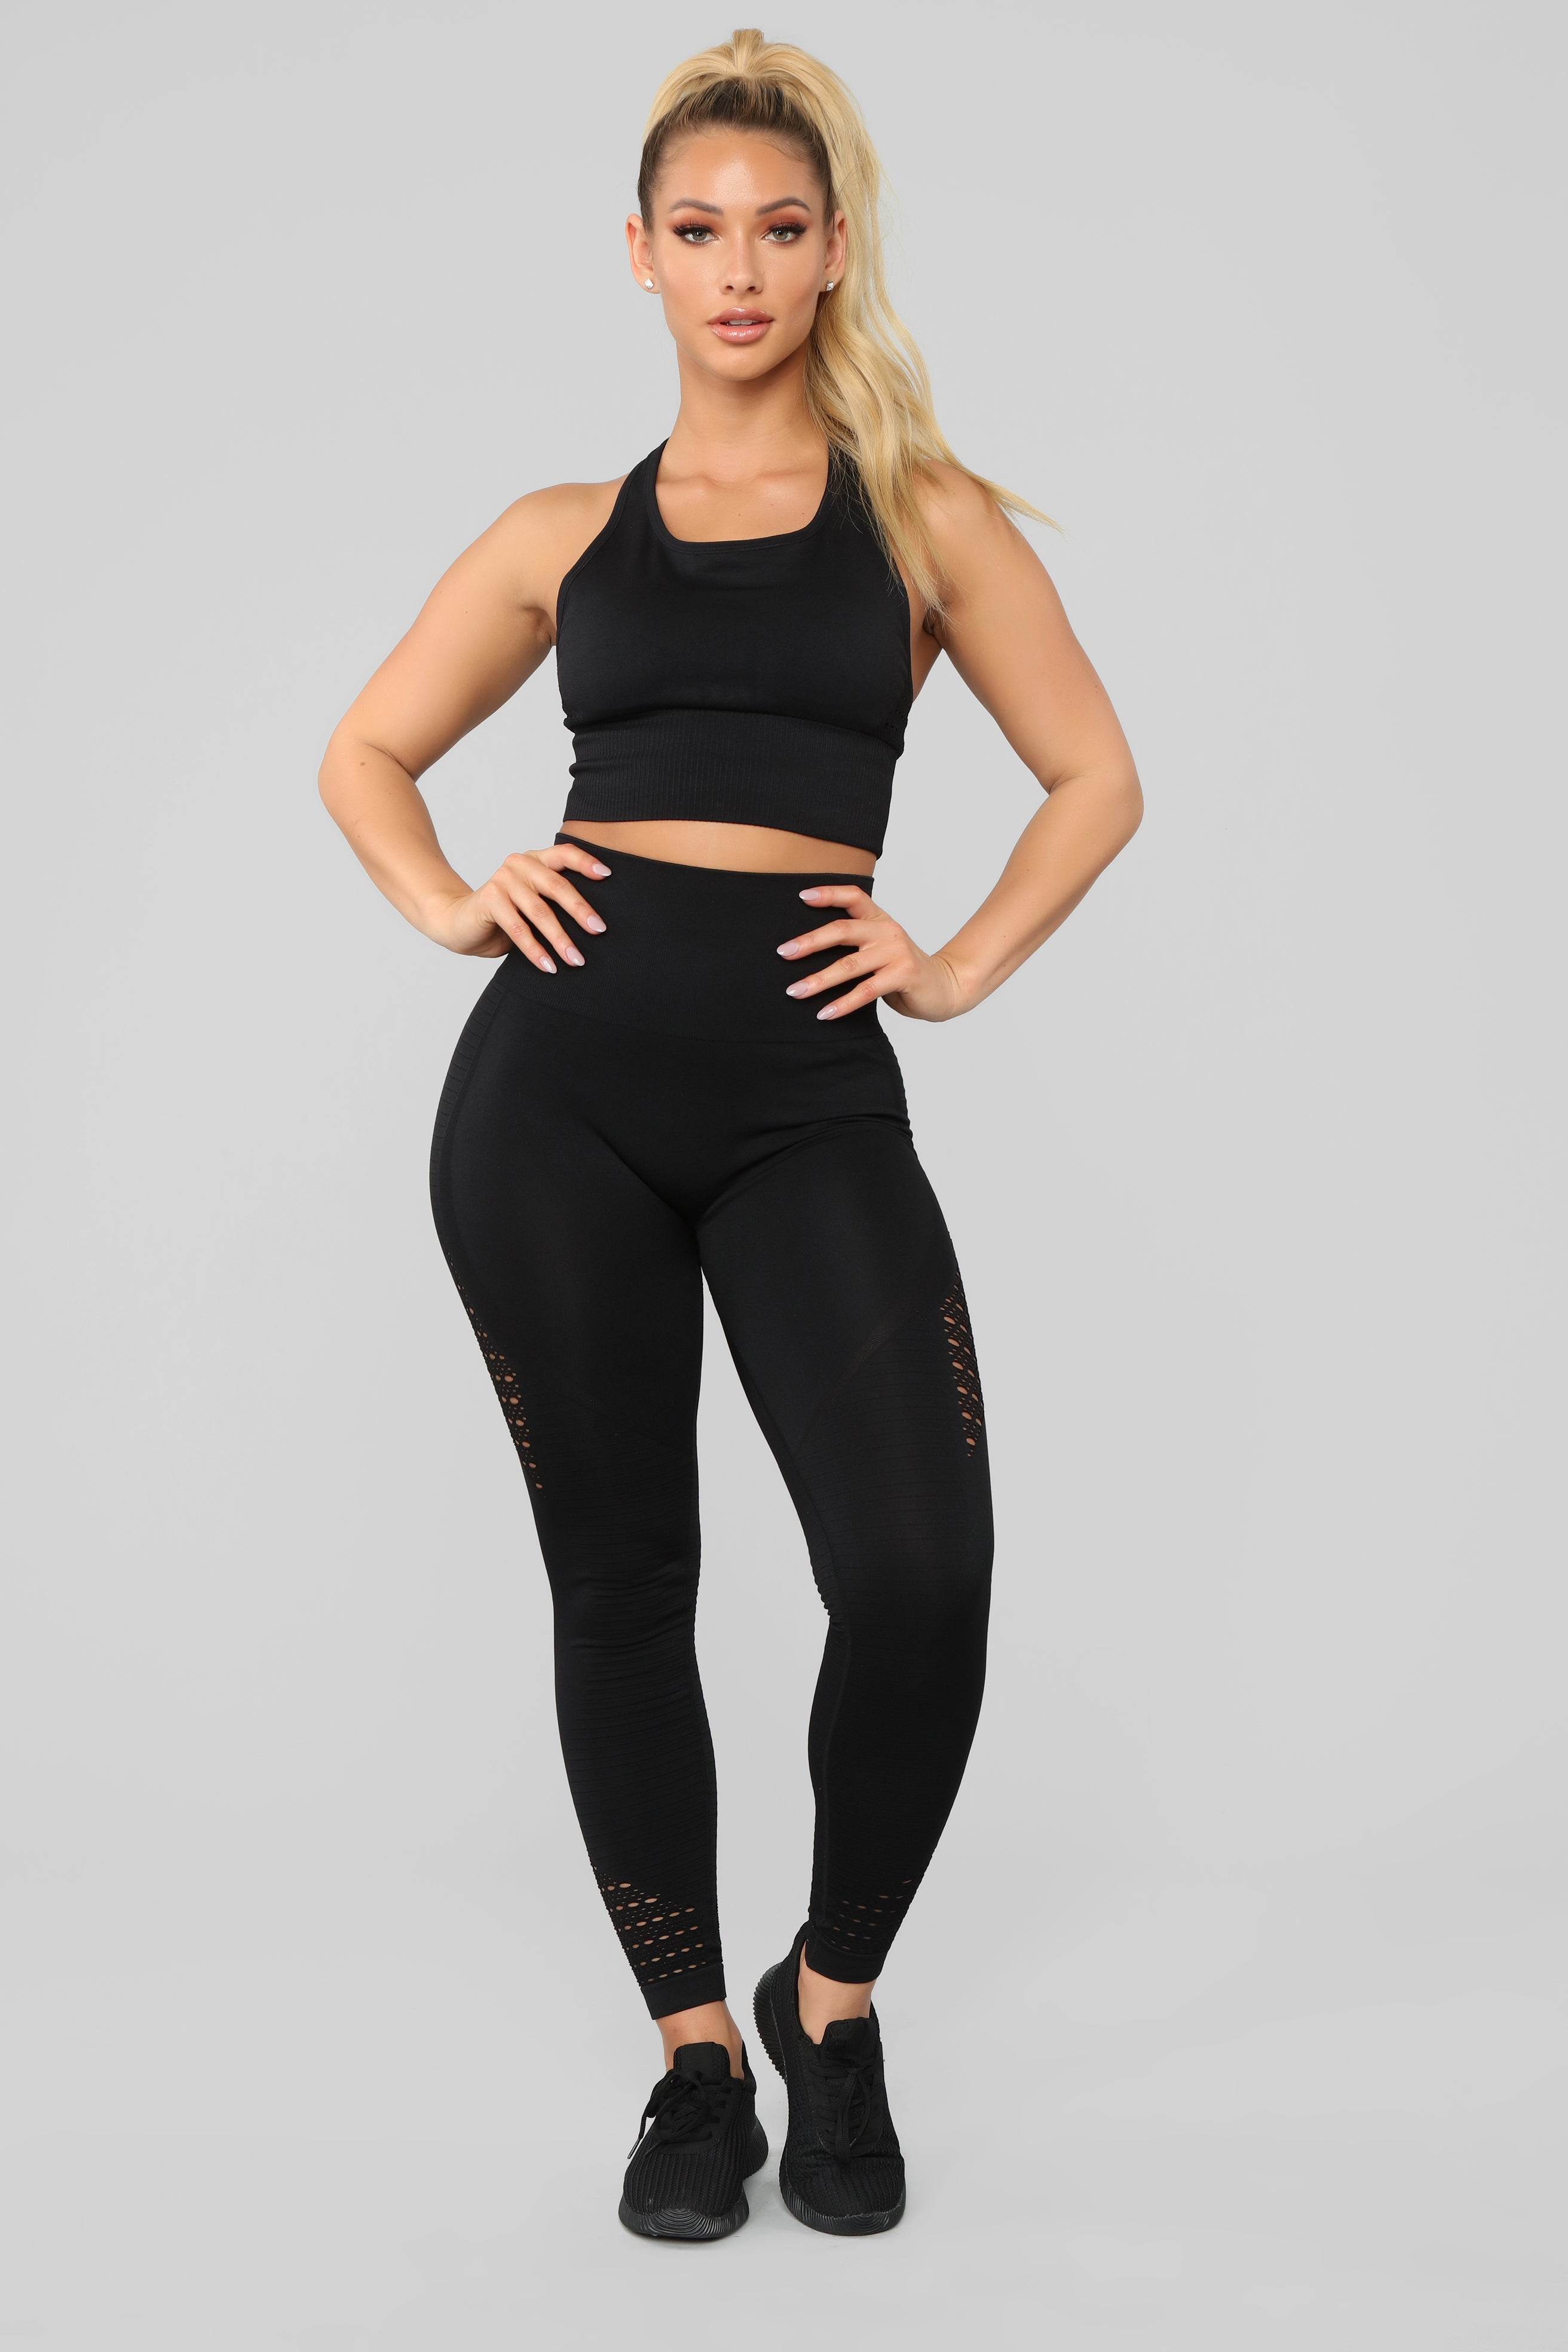 d0b6f728d9bd9 With Ease Seamless Active Leggings - Black